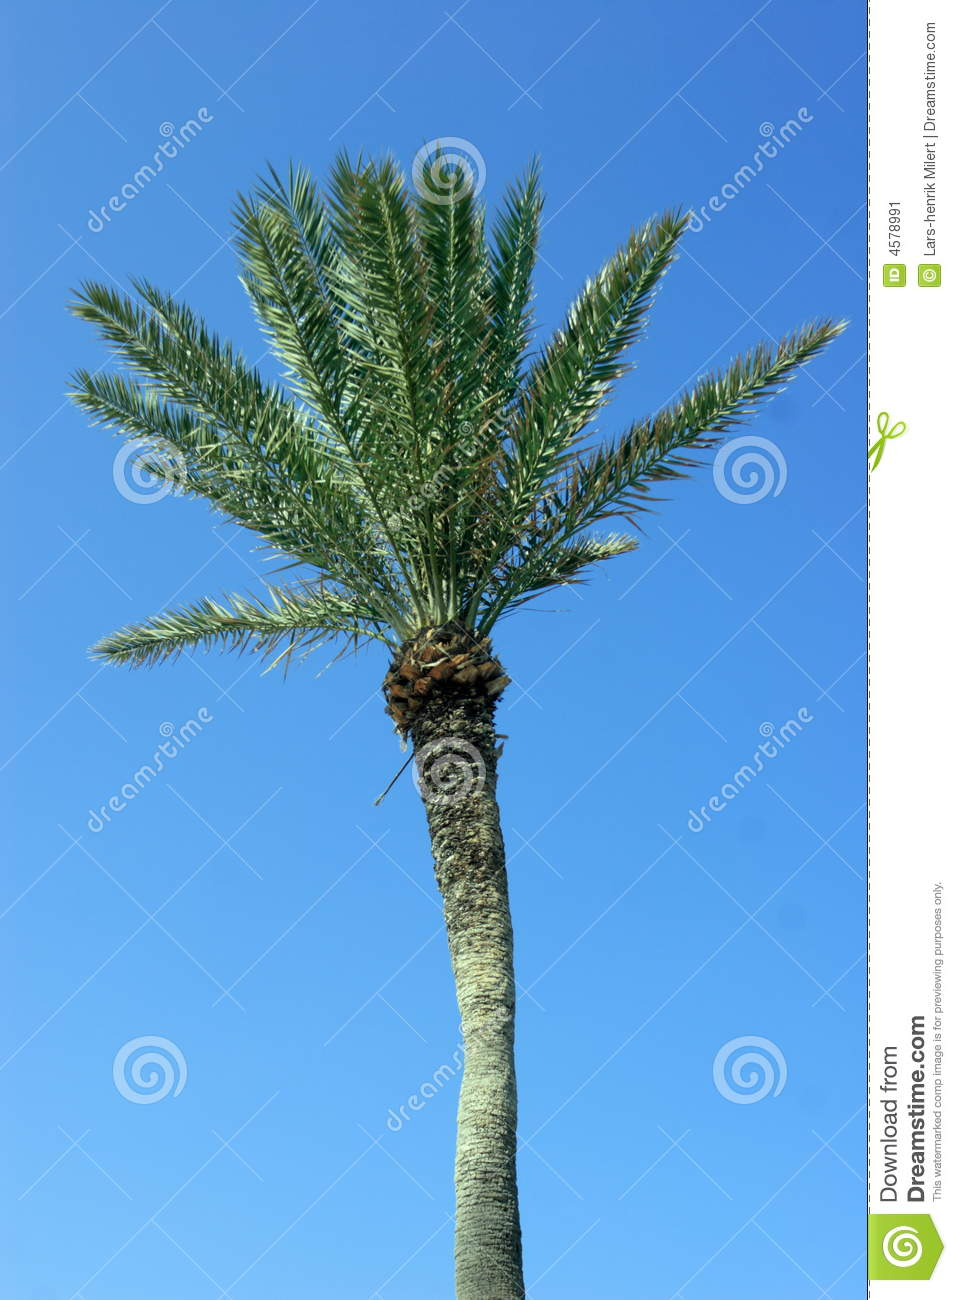 Palmtree on blue background